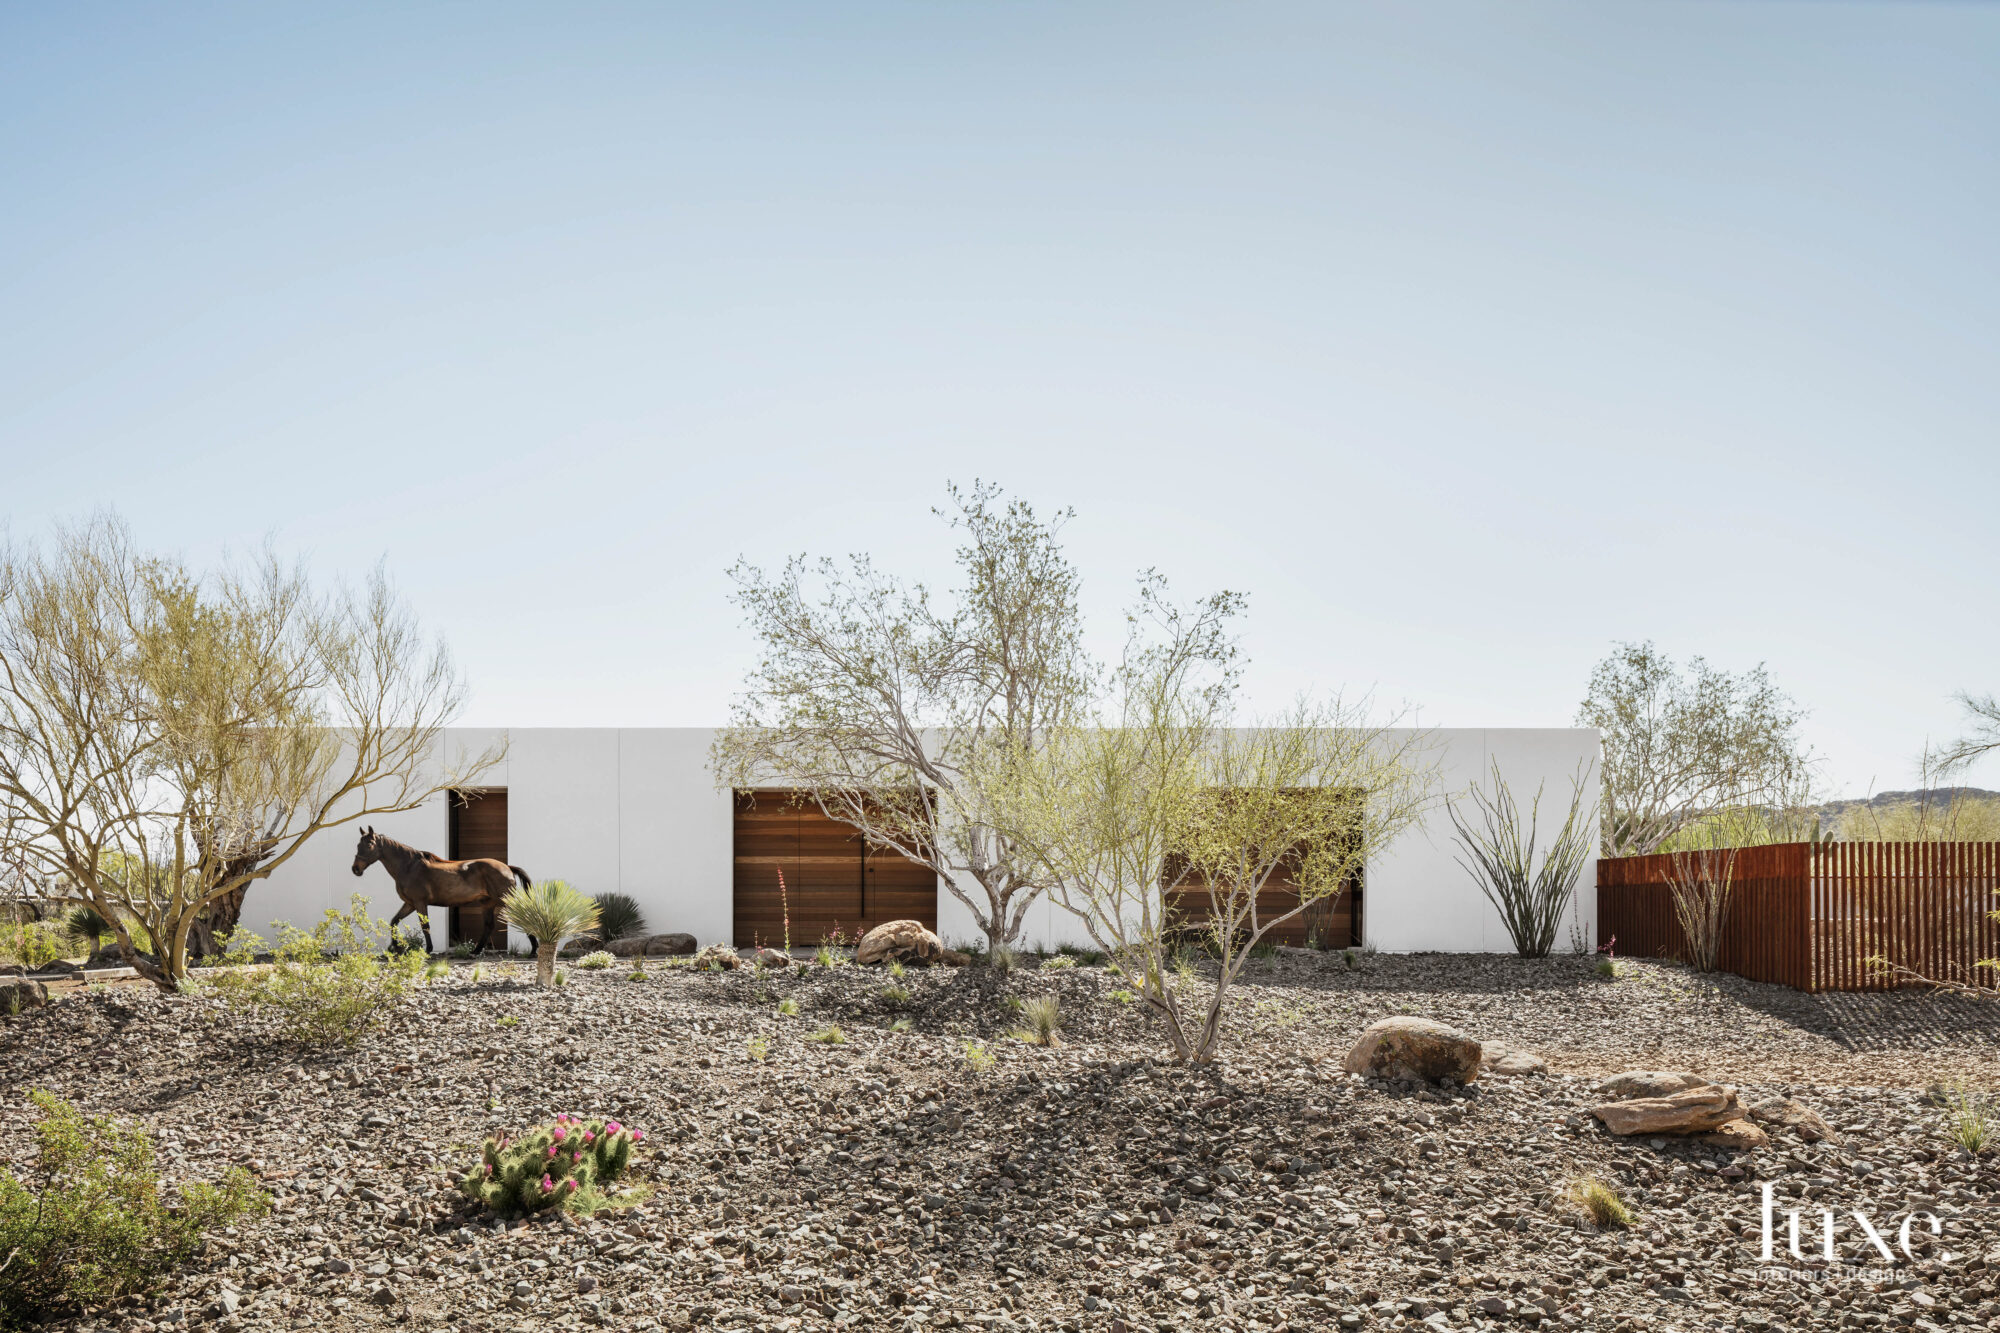 The outside of a modern, minimalist house in the Sonoran Desert.